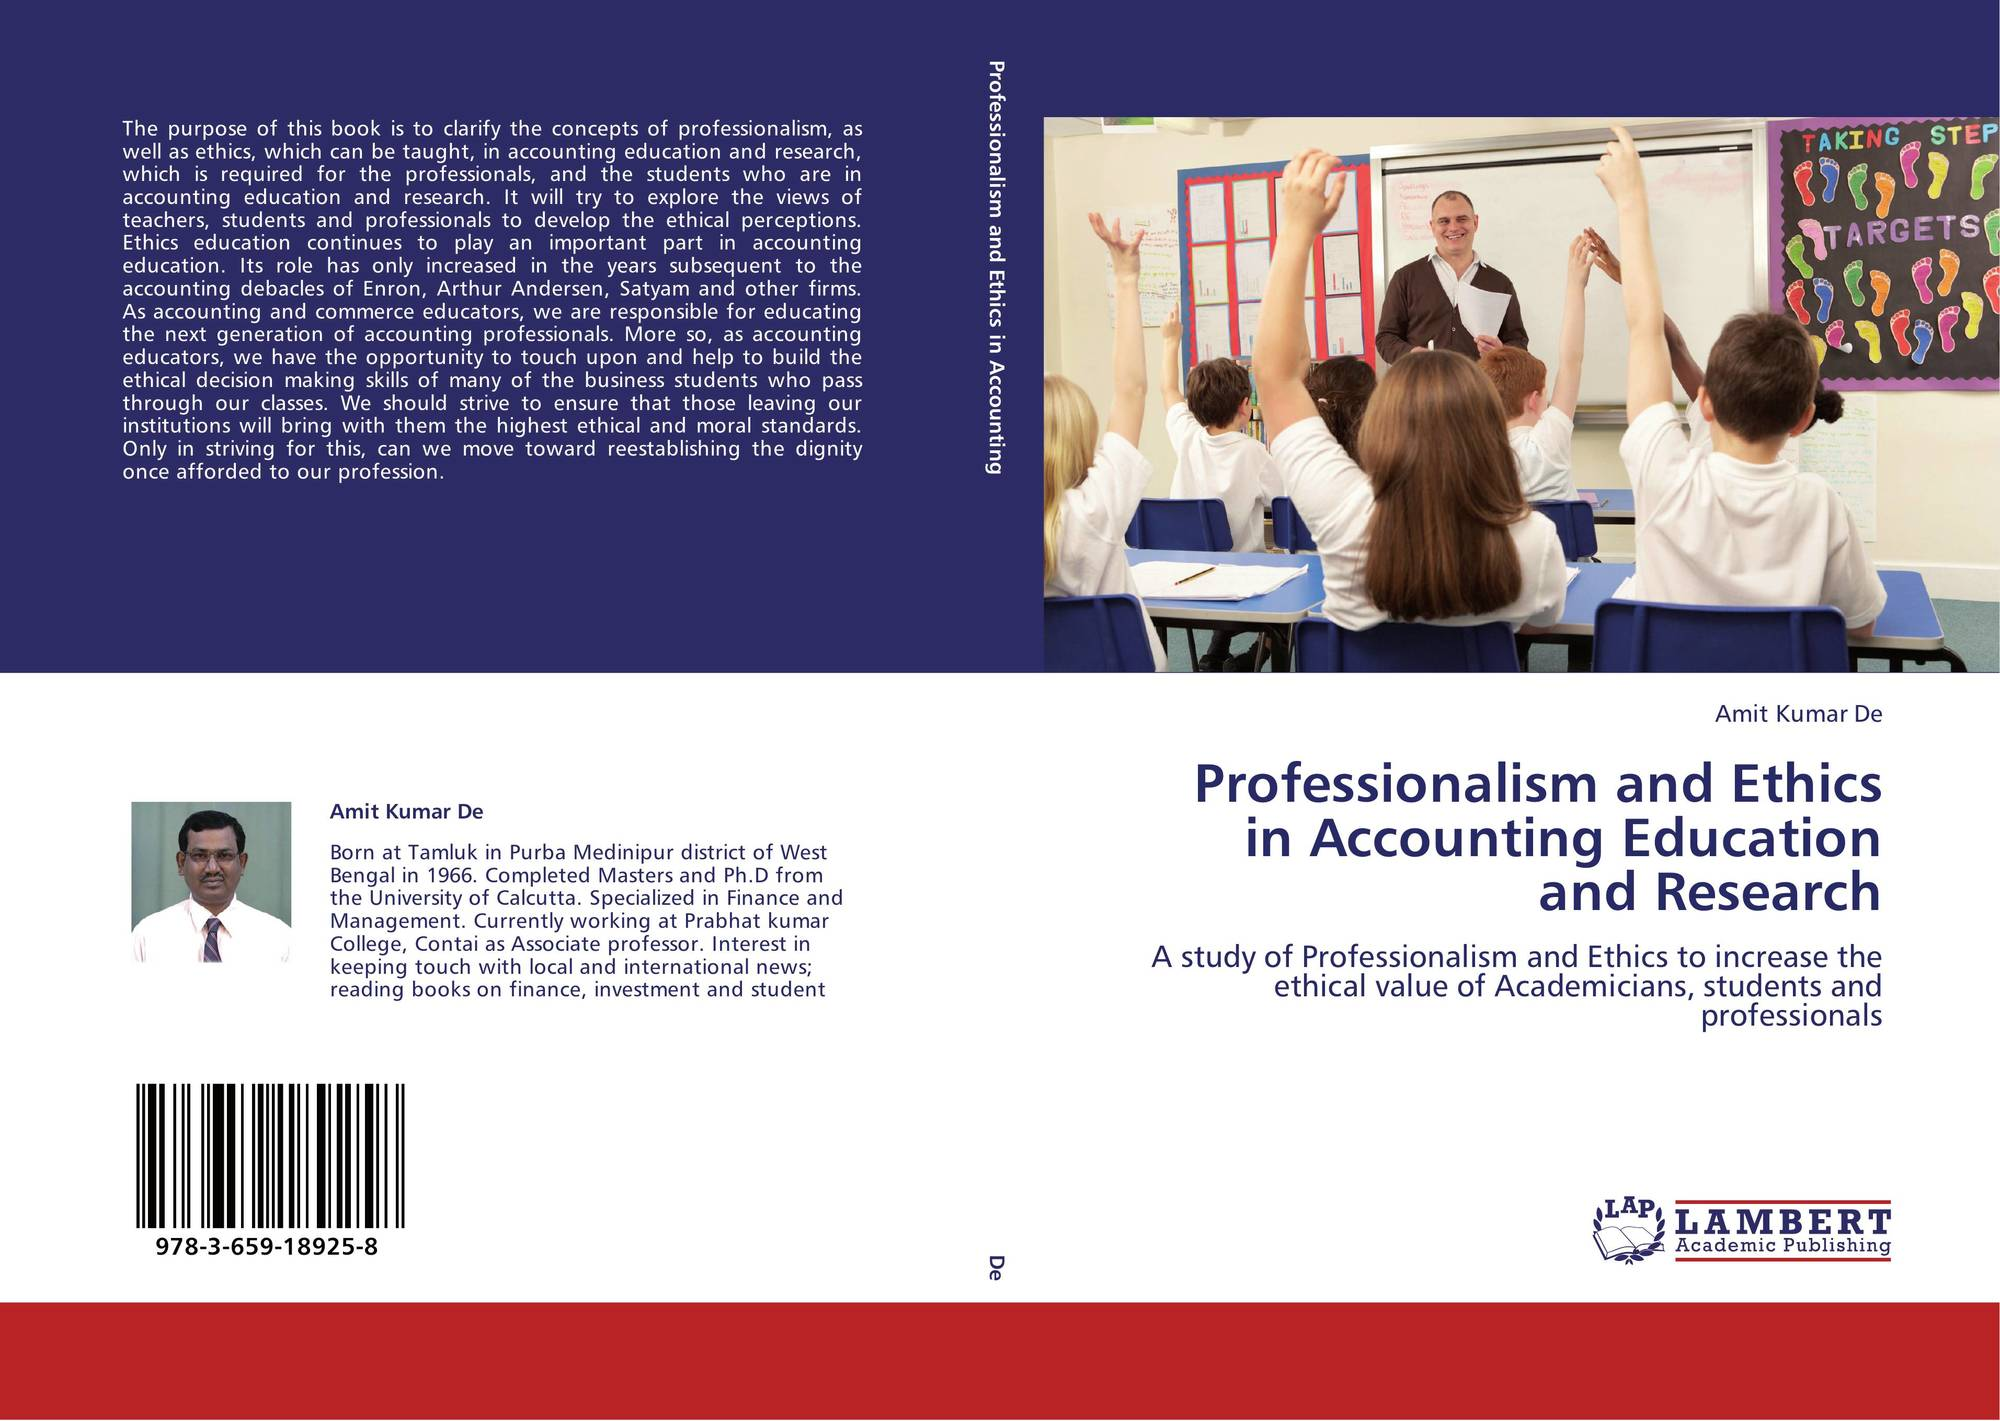 a personal education and the ethical dilemma and the hypothetical scenario Teachers face many ethical dilemmas each day in the classroom  the responsibilities of a profession and to improve personal beliefs, values, and morals  code of ethics of the education.